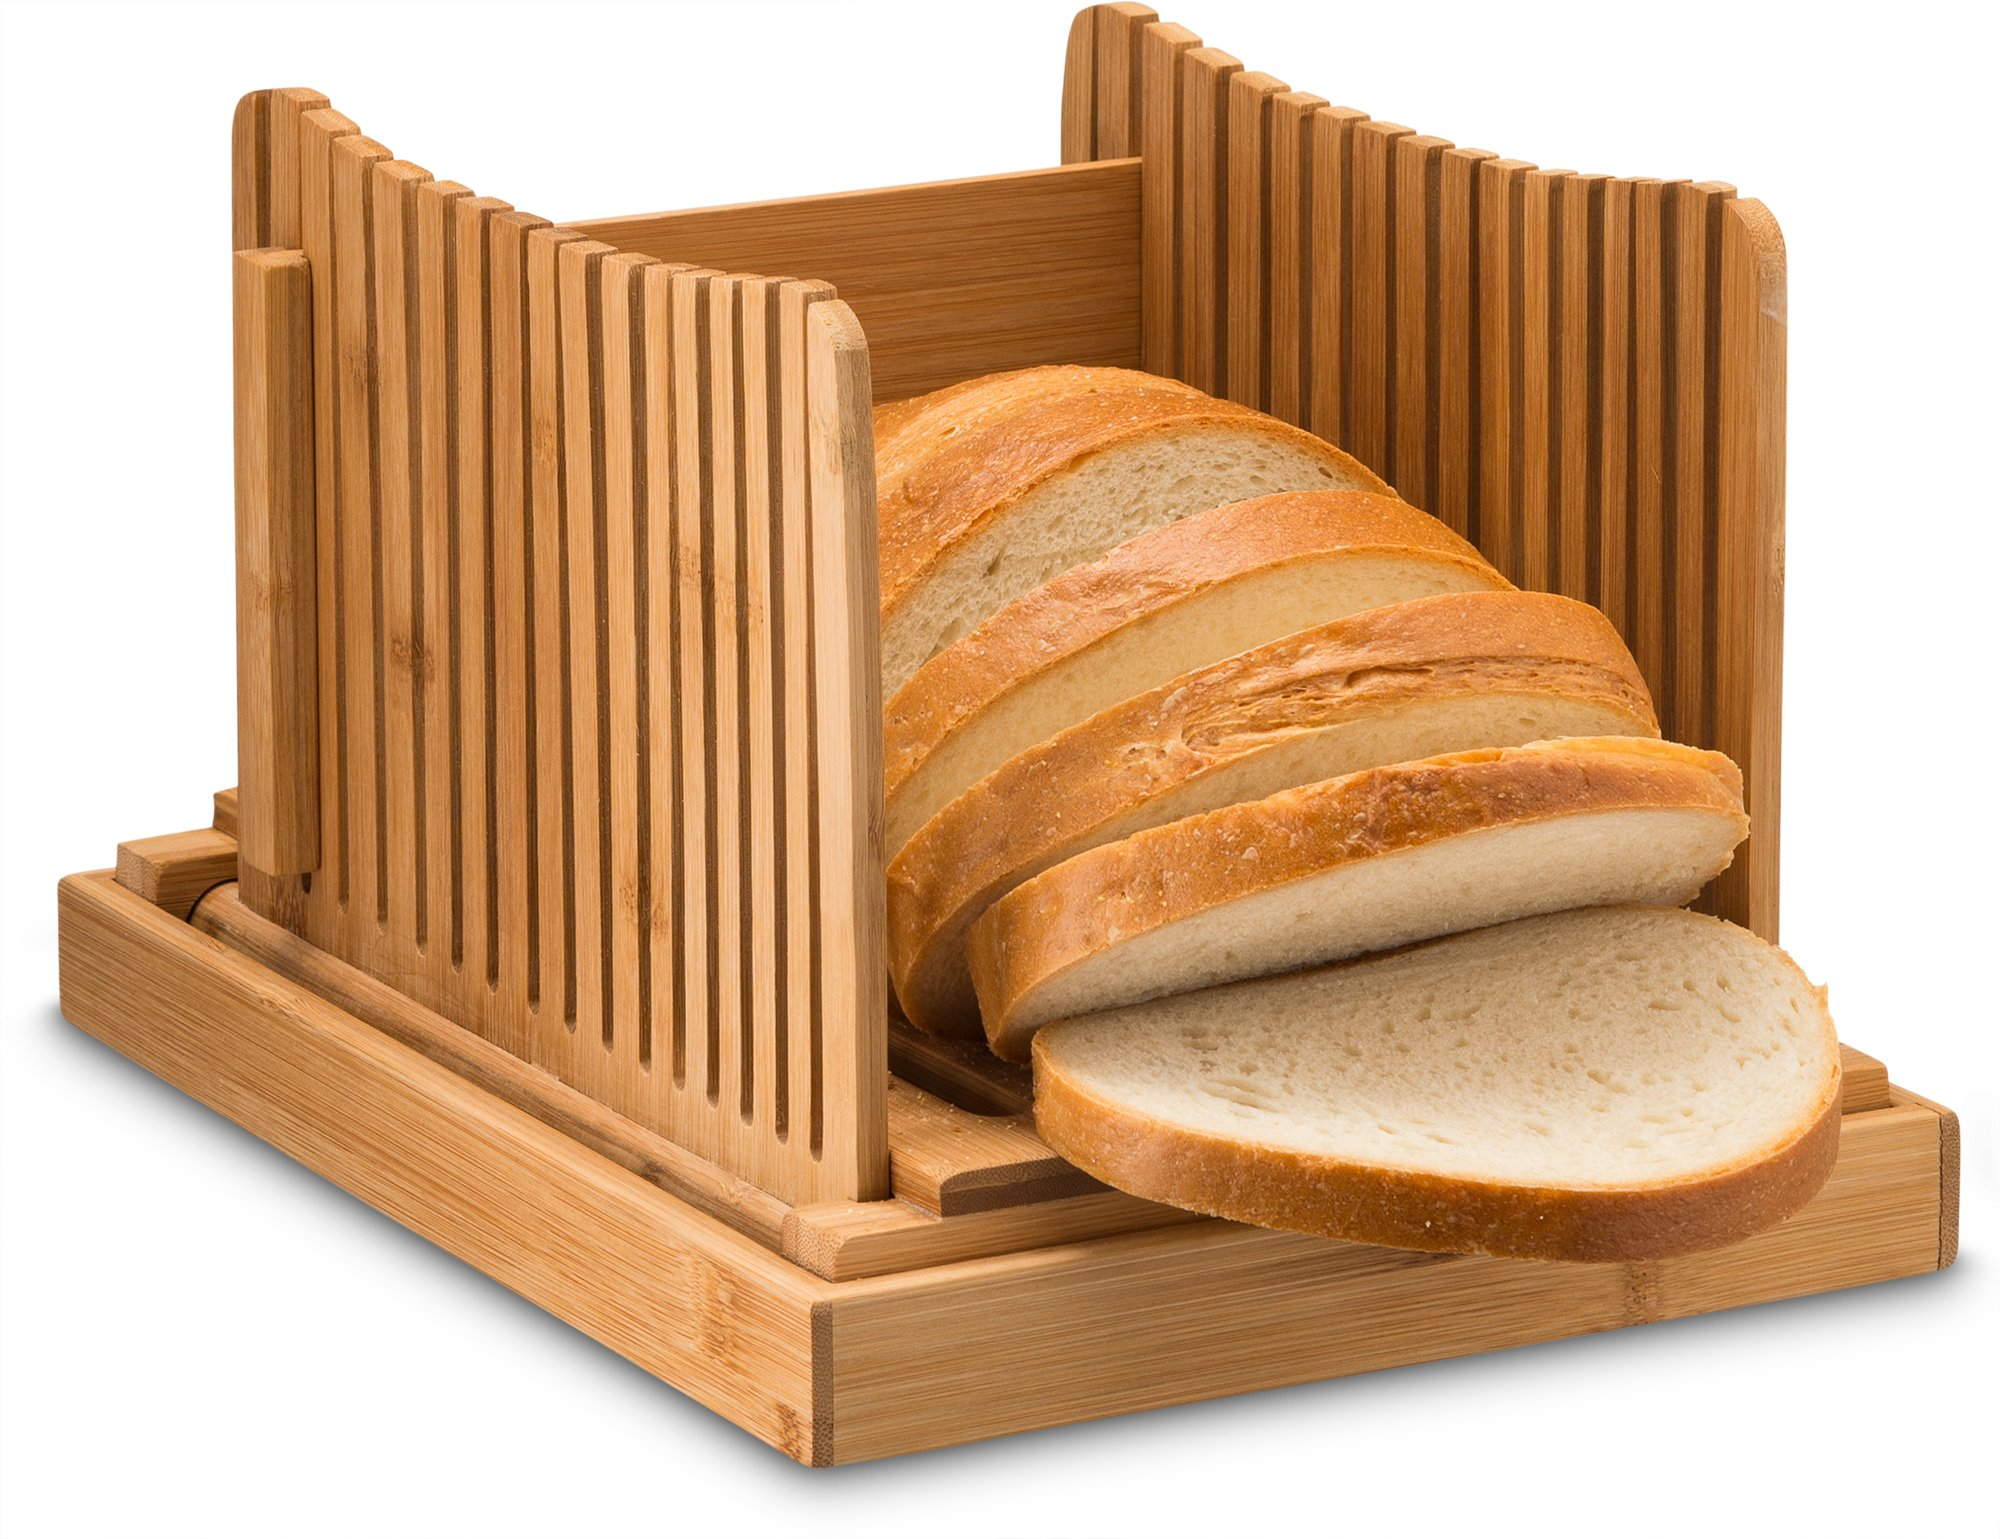 Bamboo Bread Slicers for Homemade Bread, Compact Foldable Bread Slicer Guide, Wooden Bagel Slicer